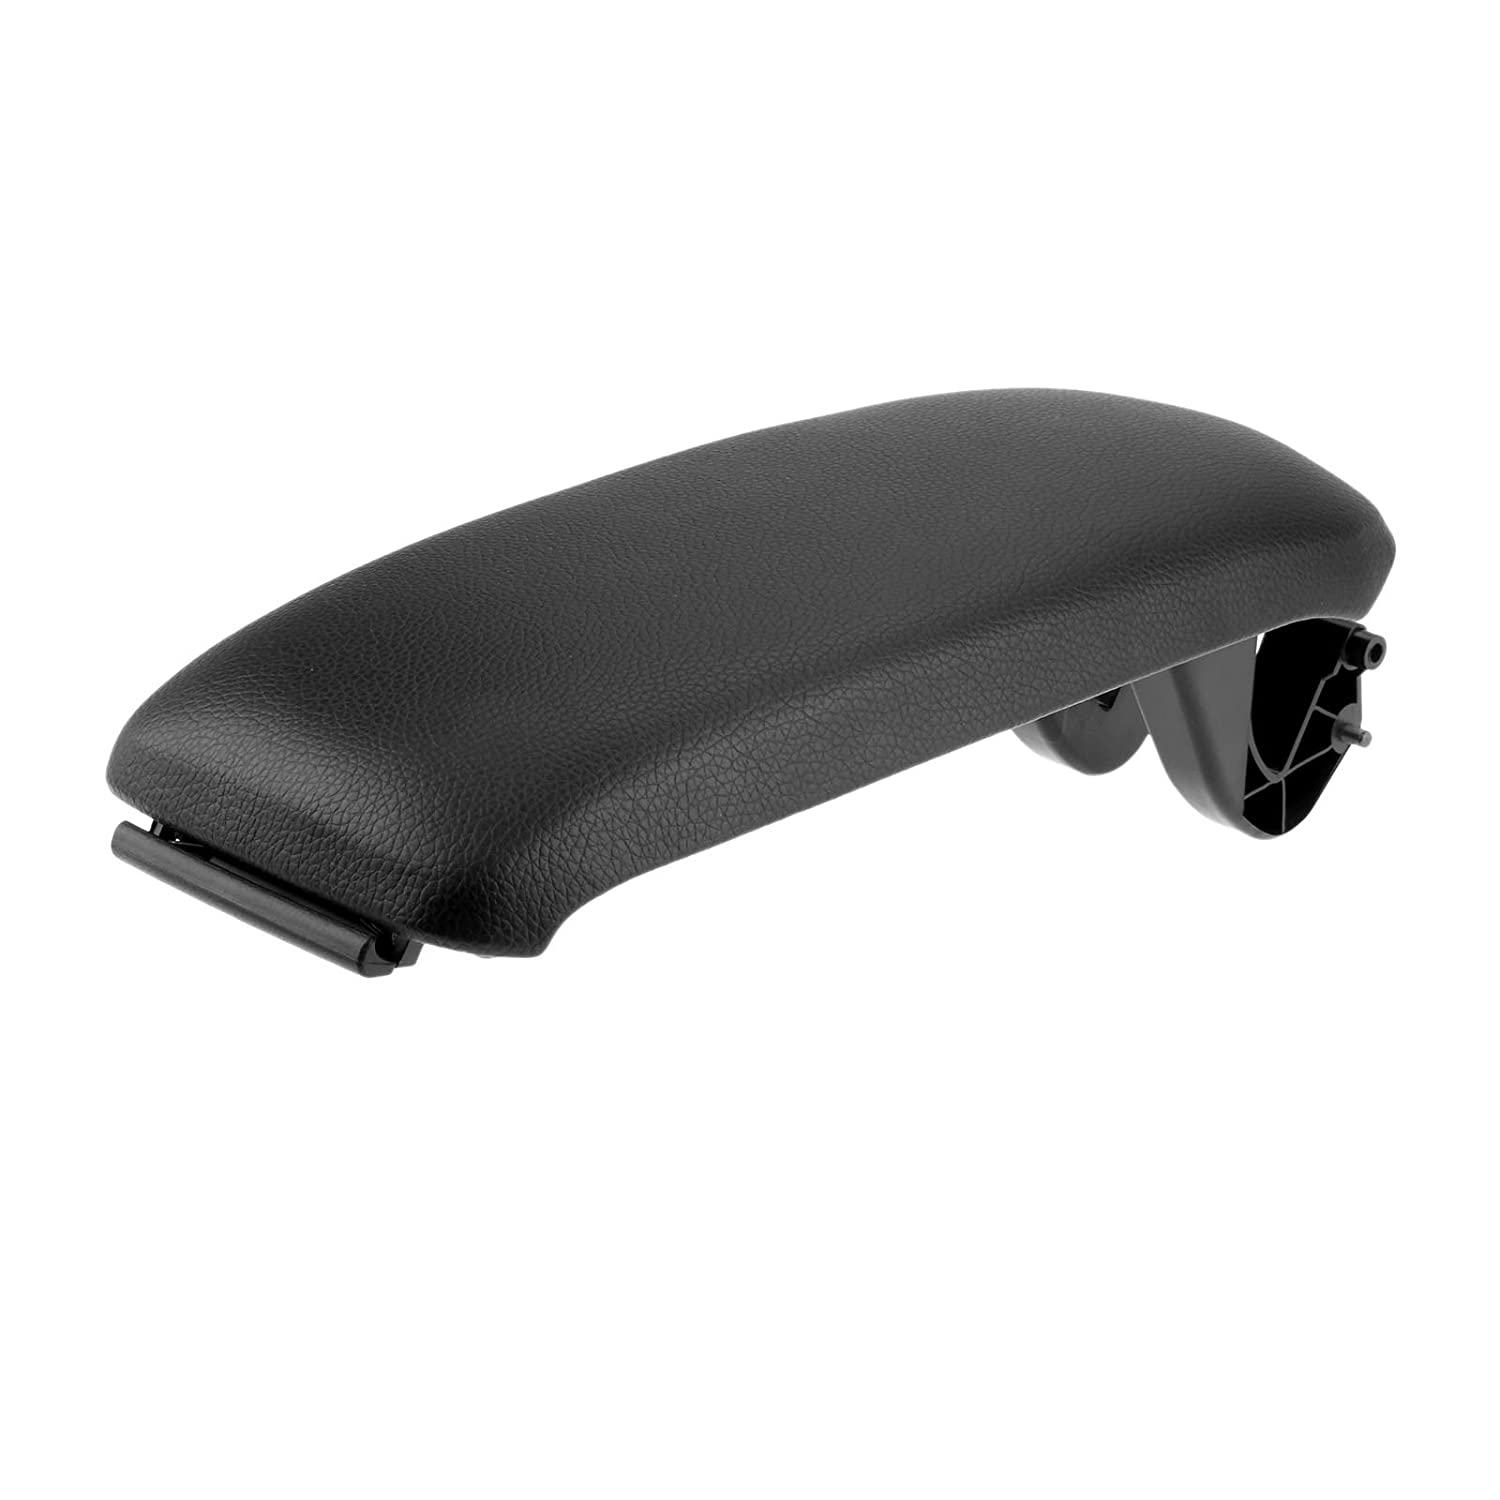 Aupoko Leather Armrest Center Console Lid Cover, Base Plate Fit for Audi A3 8P 2003-2012 Black